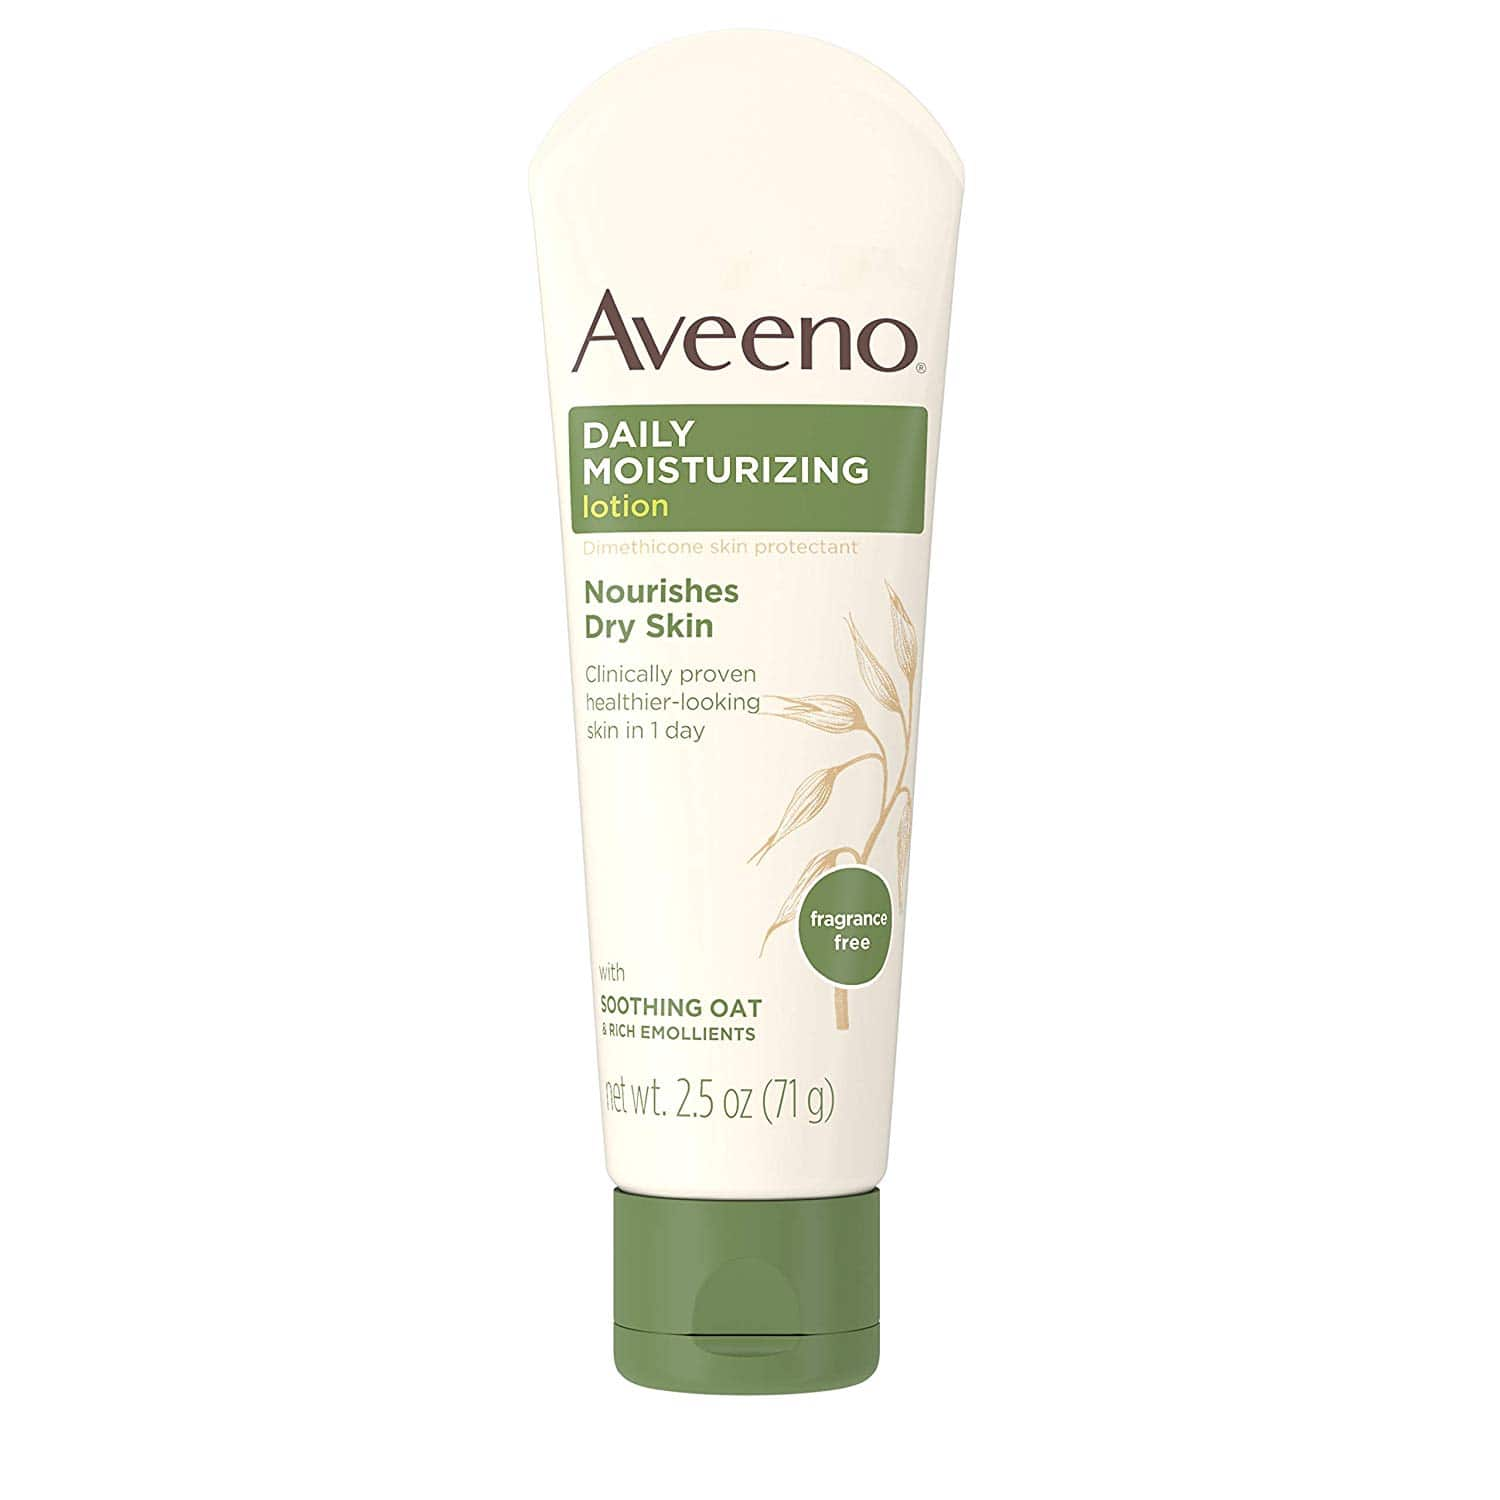 Aveeno 2-Pack 2.5oz Daily Moisturizing Lotion $5.76 & More - Amazon